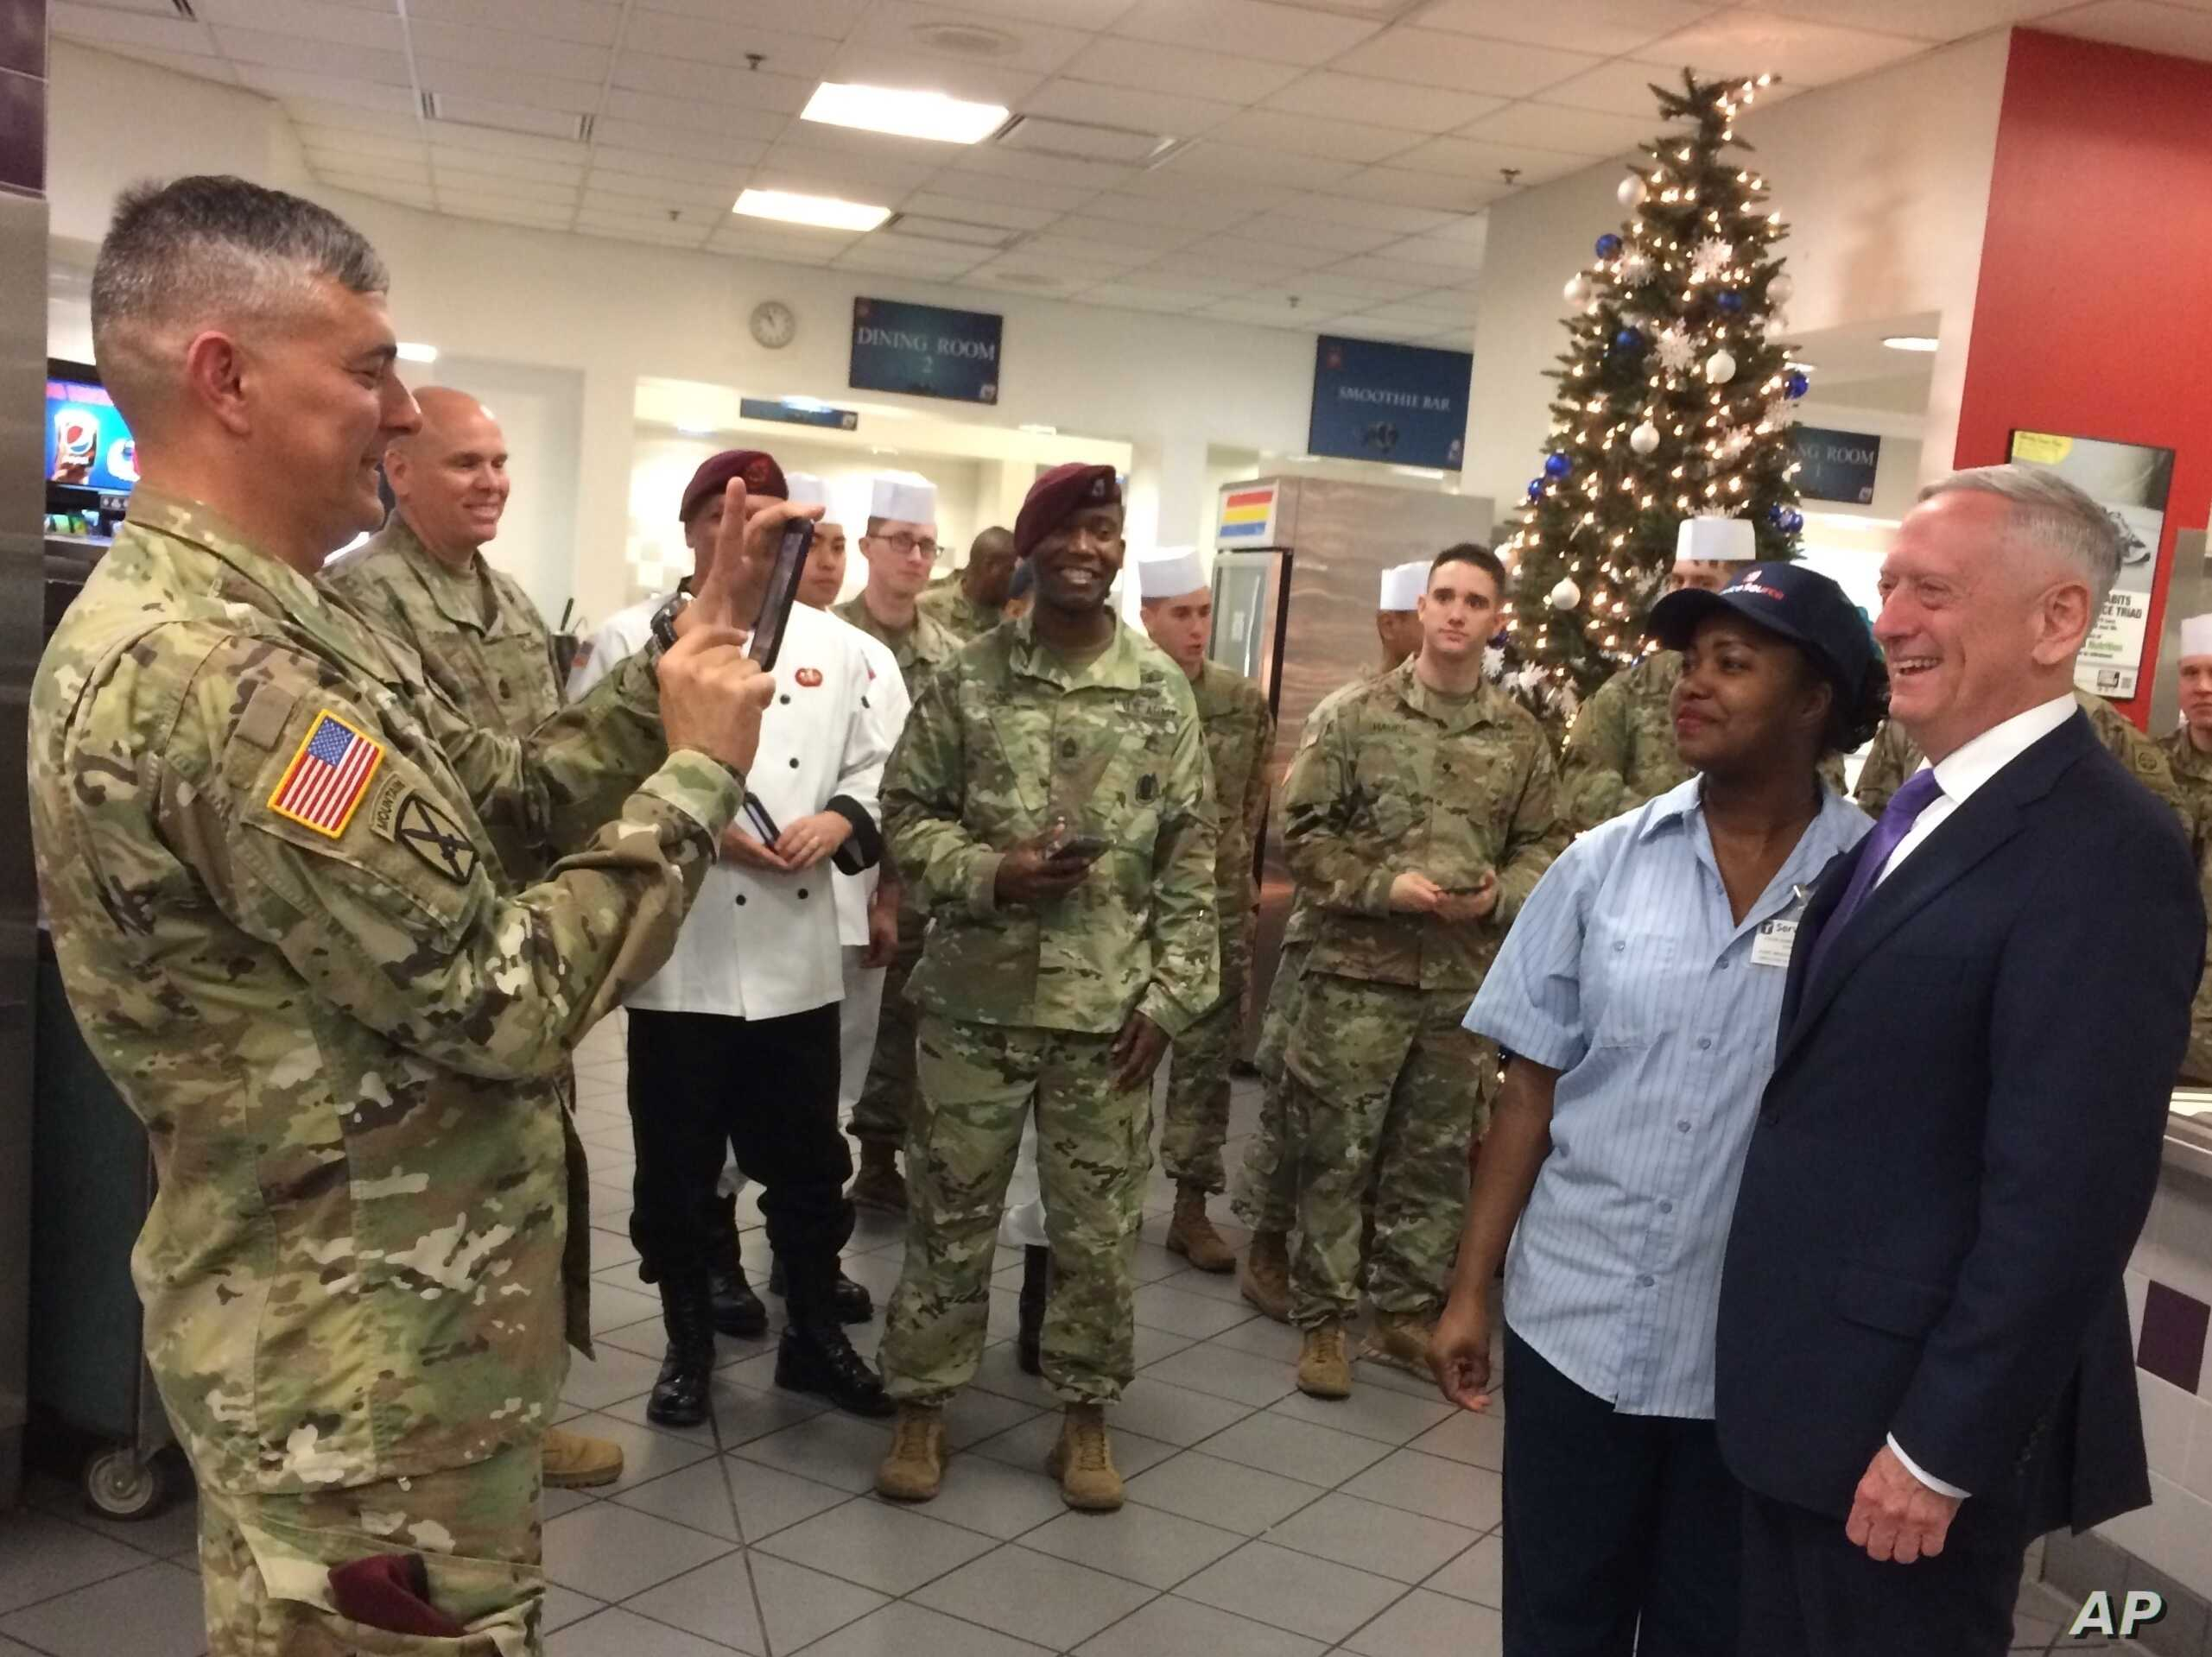 FILE - Lt. Gen. Stephen Townsend takes a photo of Defense Secretary Jim Mattis and a dining facility worker at Fort Bragg, N.C., Dec. 22, 2017.